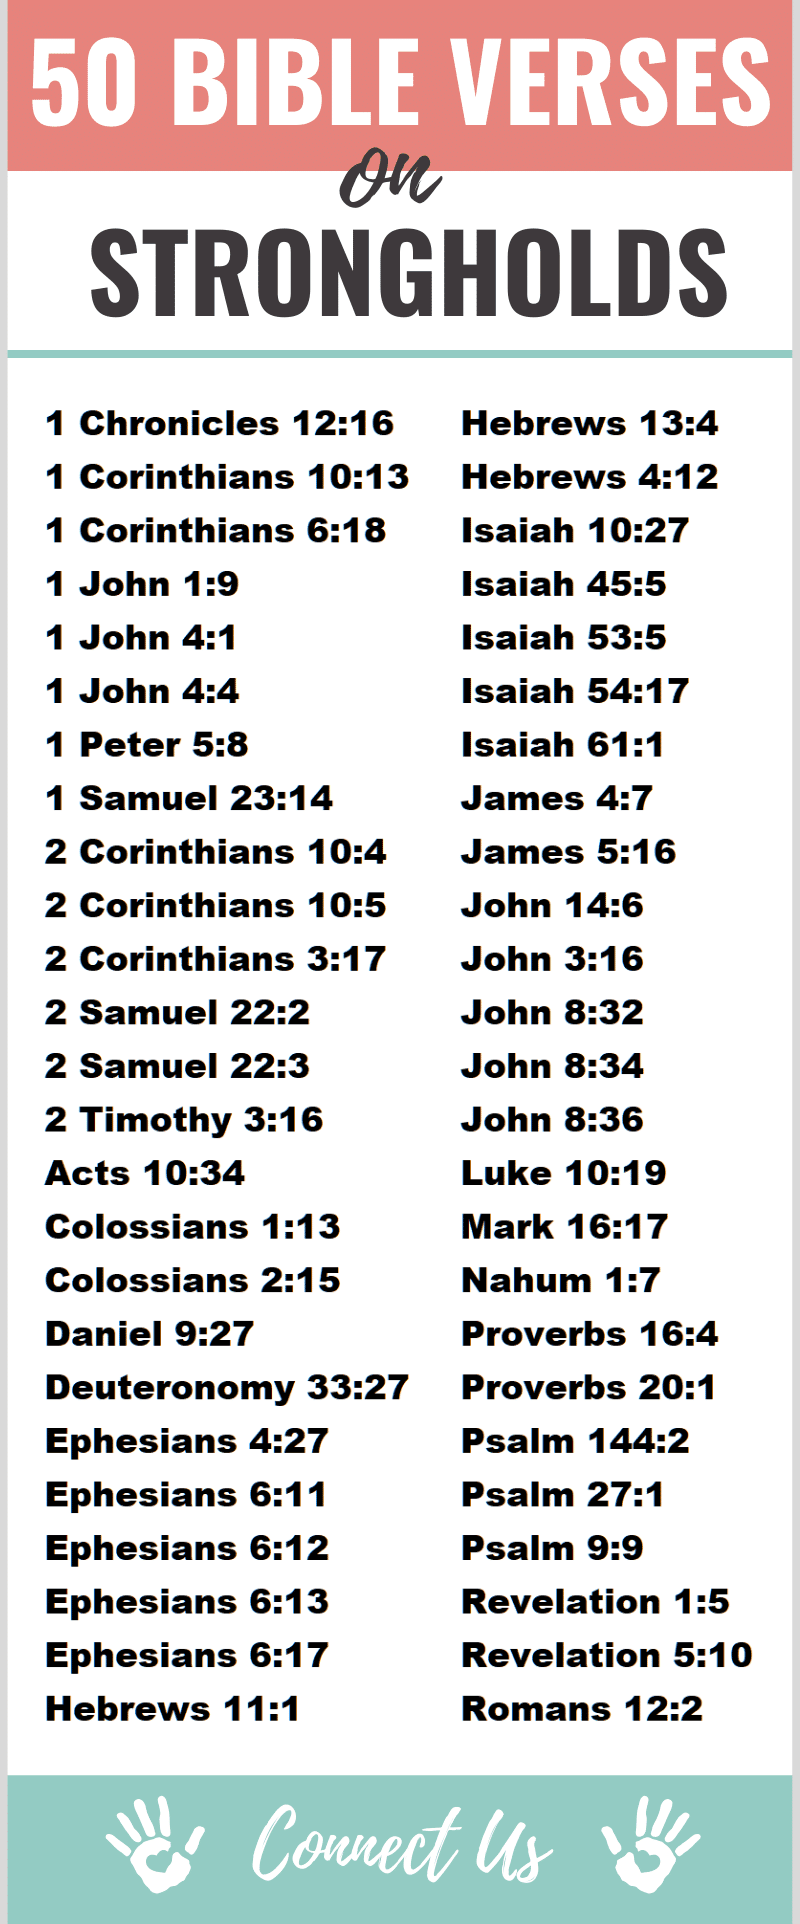 Bible Verses on Strongholds